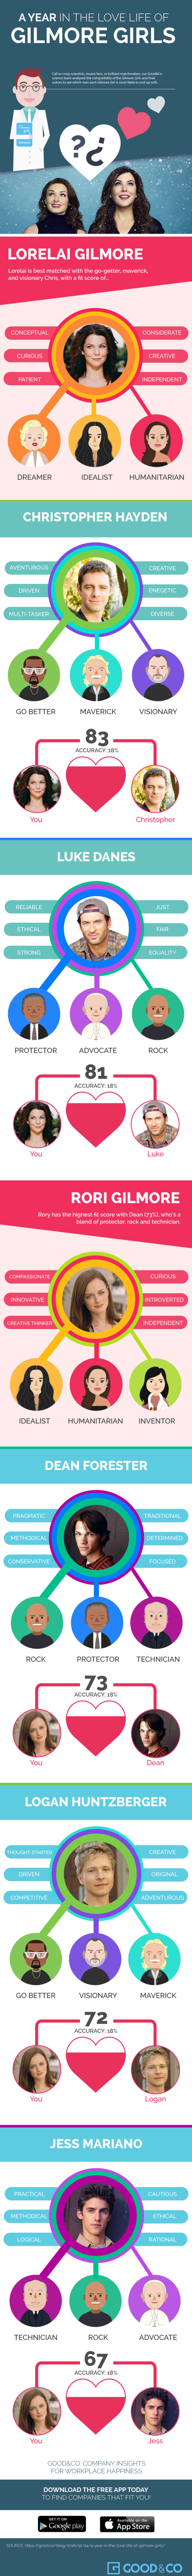 Gilmore Girls infographic / Good&CO -1